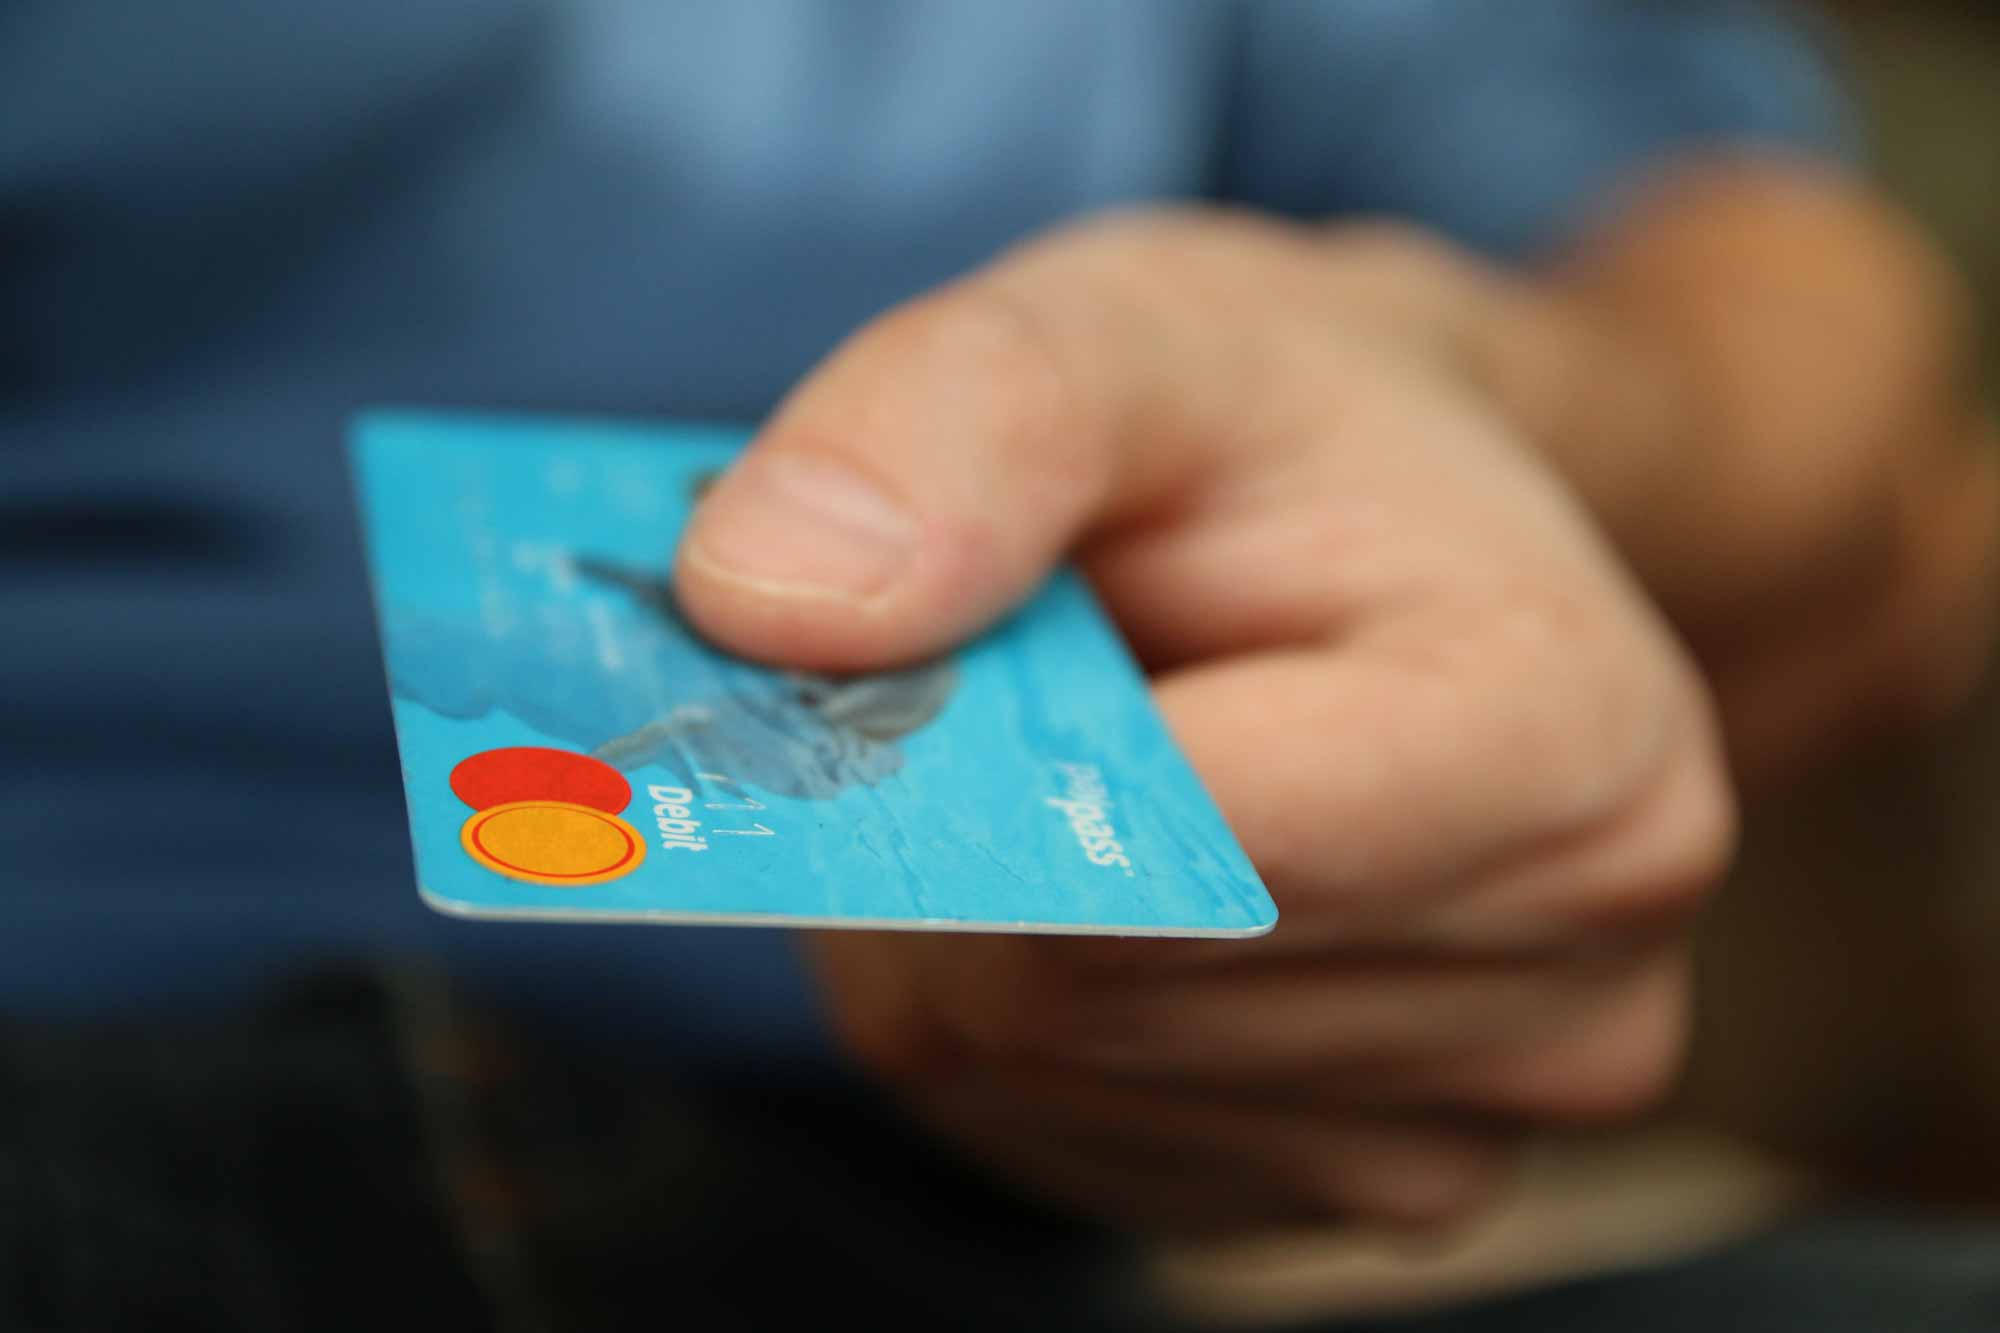 Can I Pay My Taxes With a Credit Card? - Michael Smeriglio